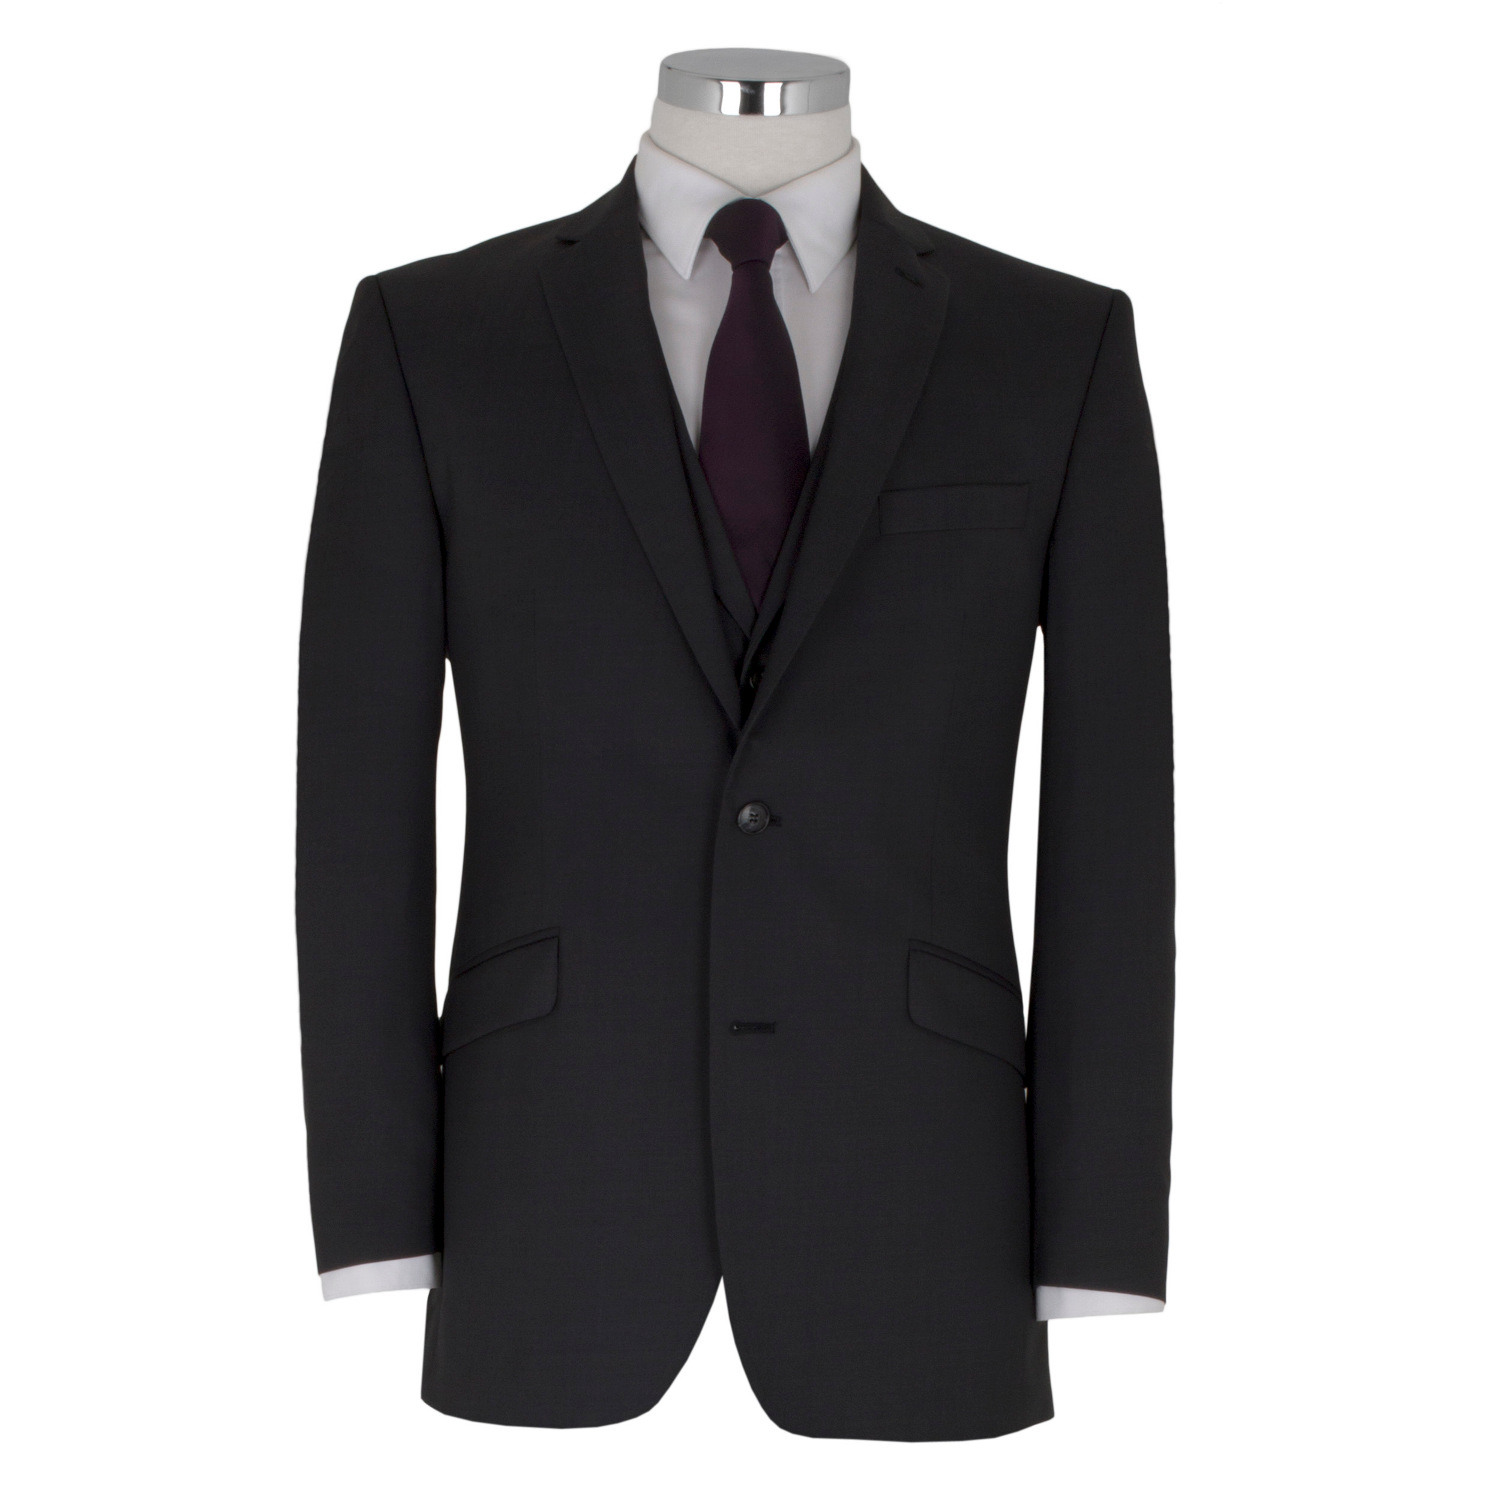 Charcoal Wool 3 Piece Suit